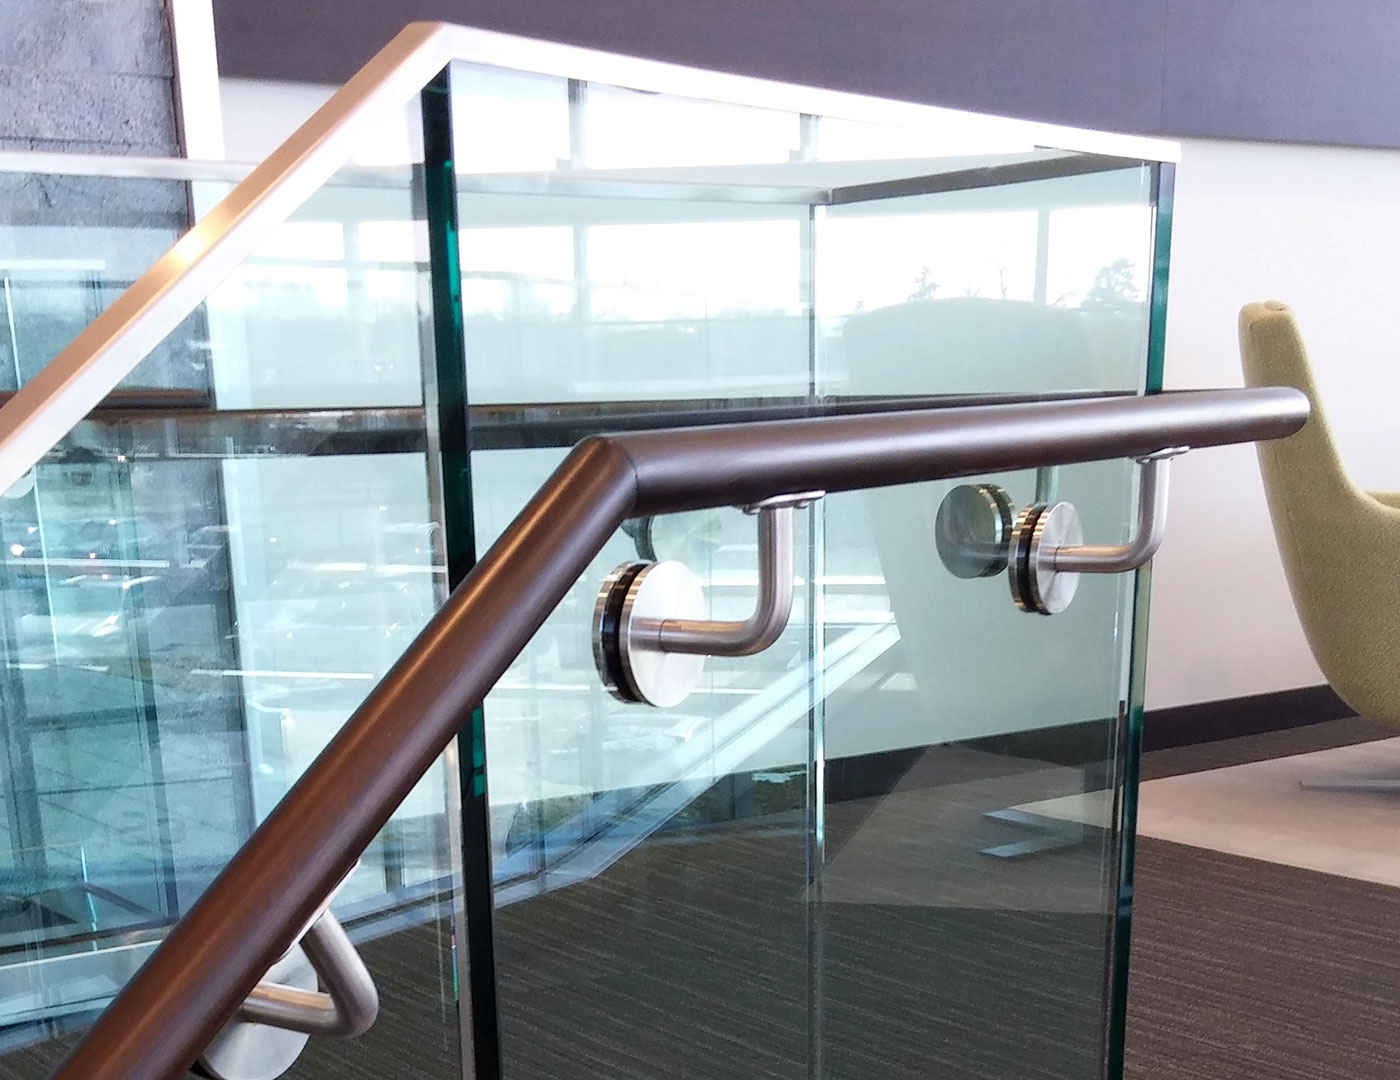 Base Shoe Glass Railing T Mobile Arena Trex Commercial Products   Staircase Handrails With Wood And Glass   Tempered Glass   Glass Panel   Wooden   Glass Printing   Solid Wood